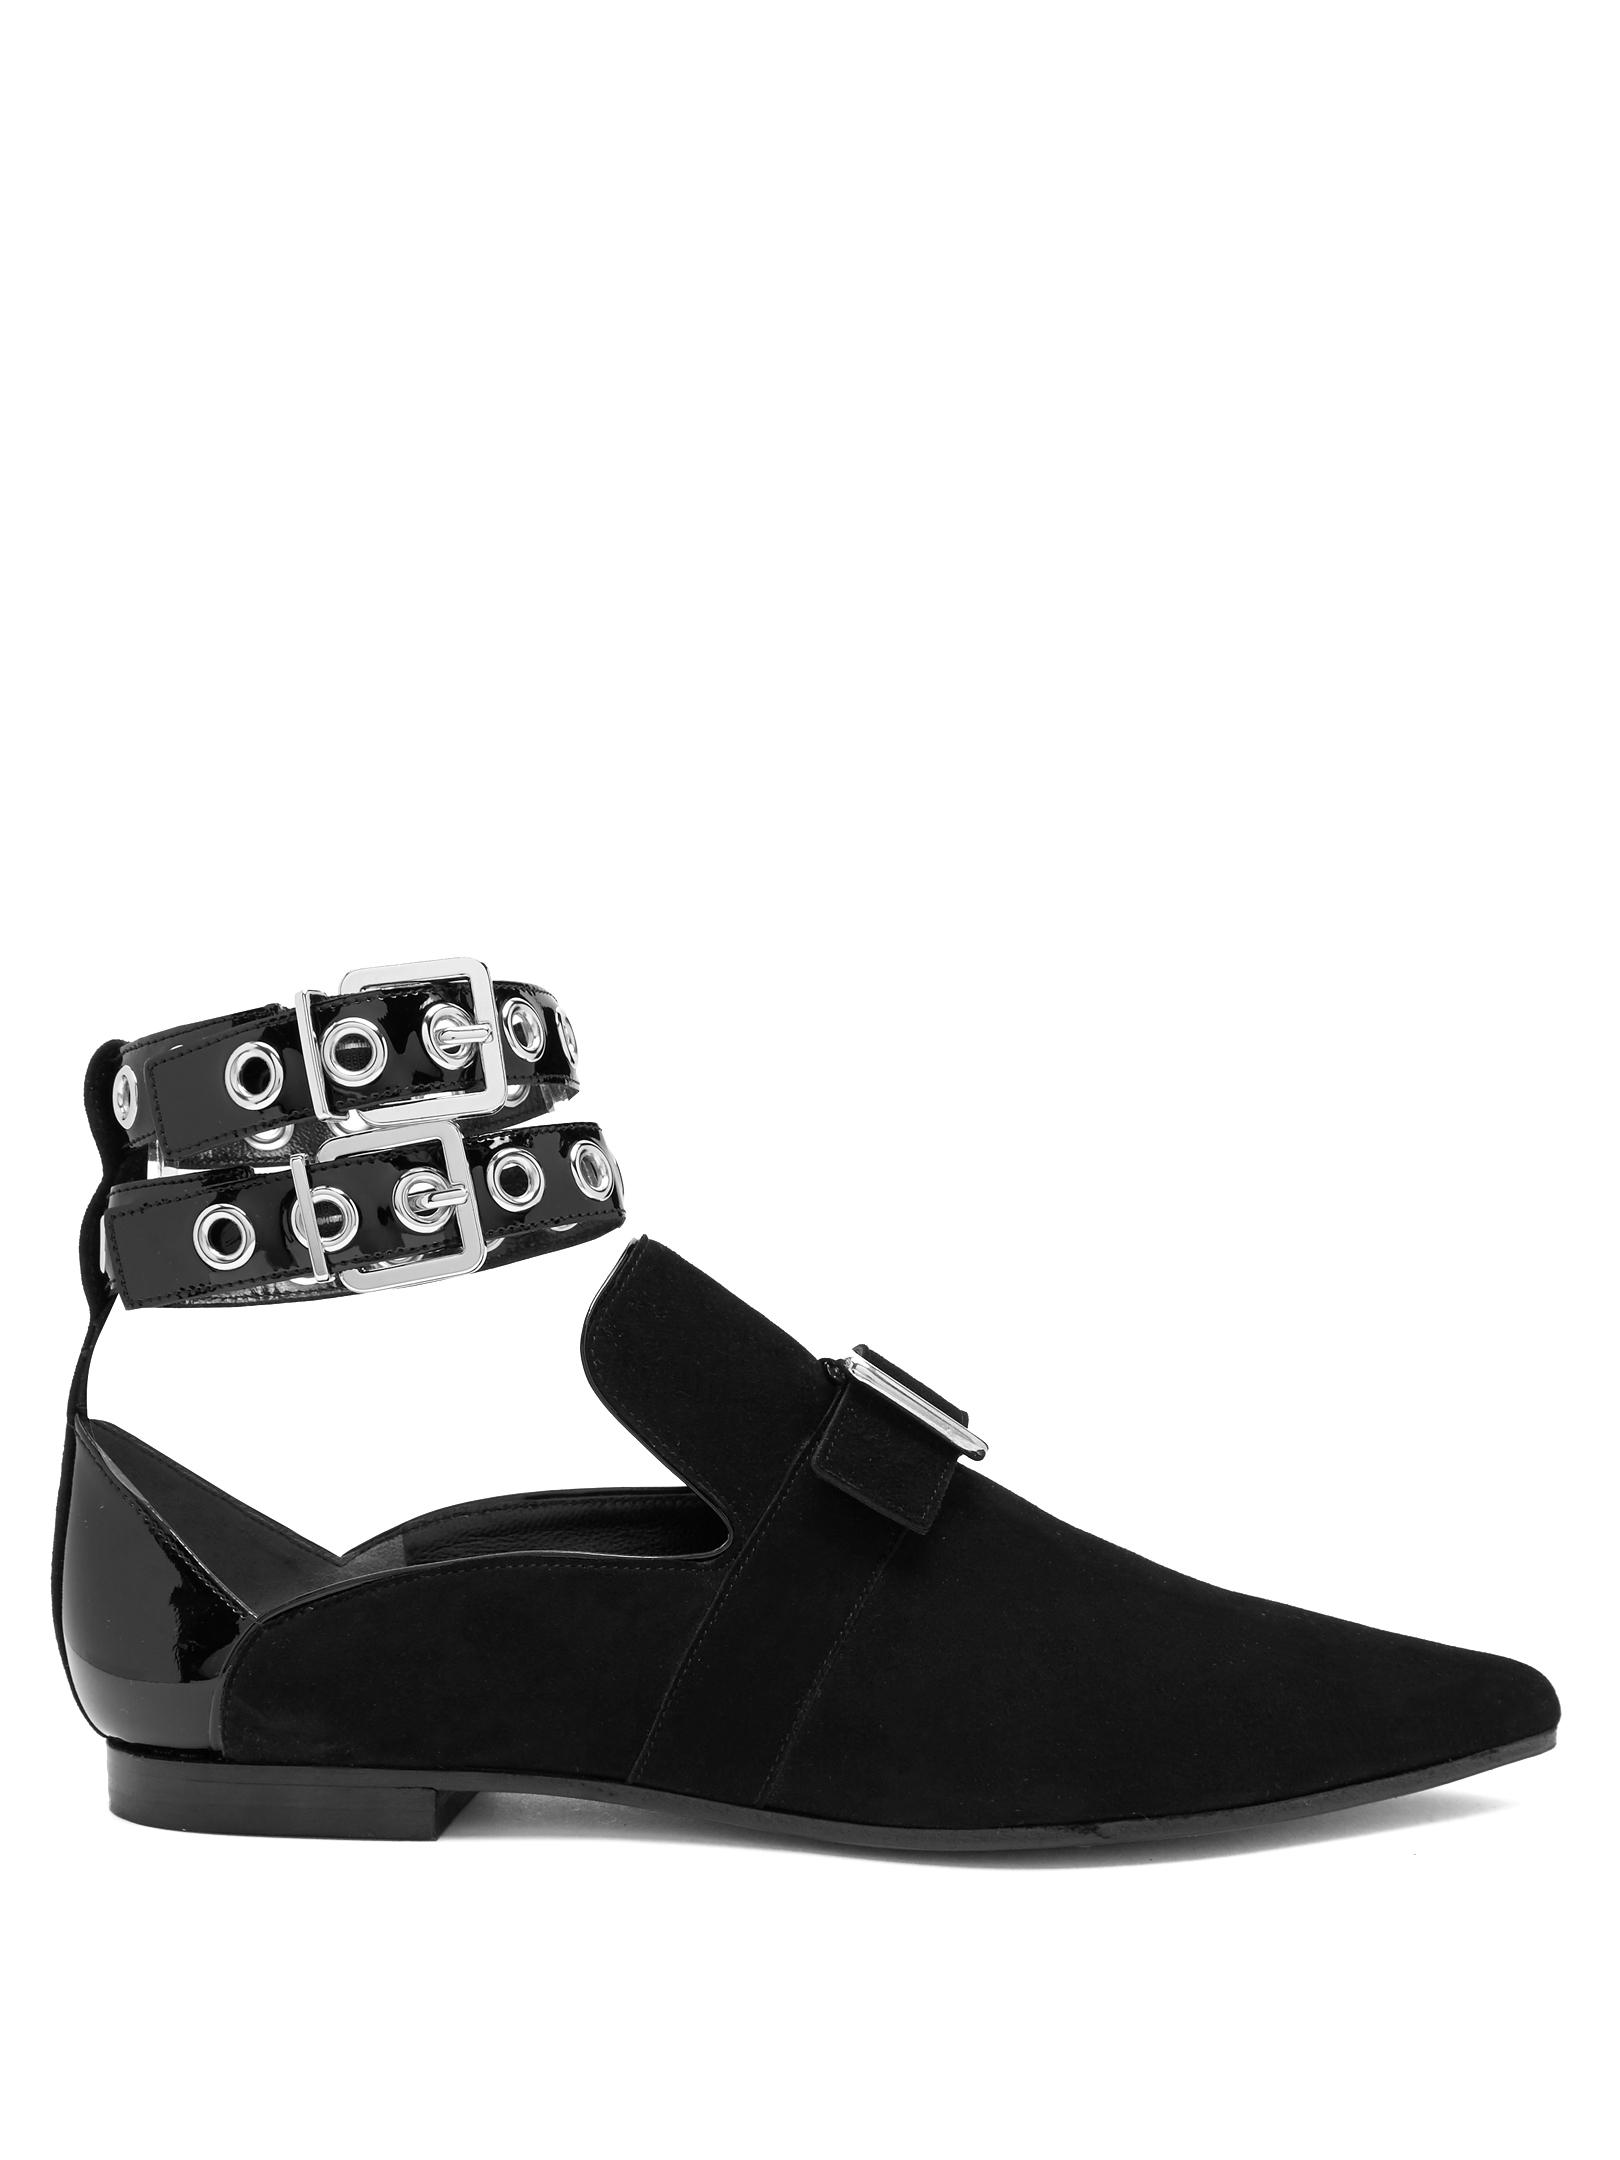 Robert Clergerie  Womens Black Fashion Sneakers